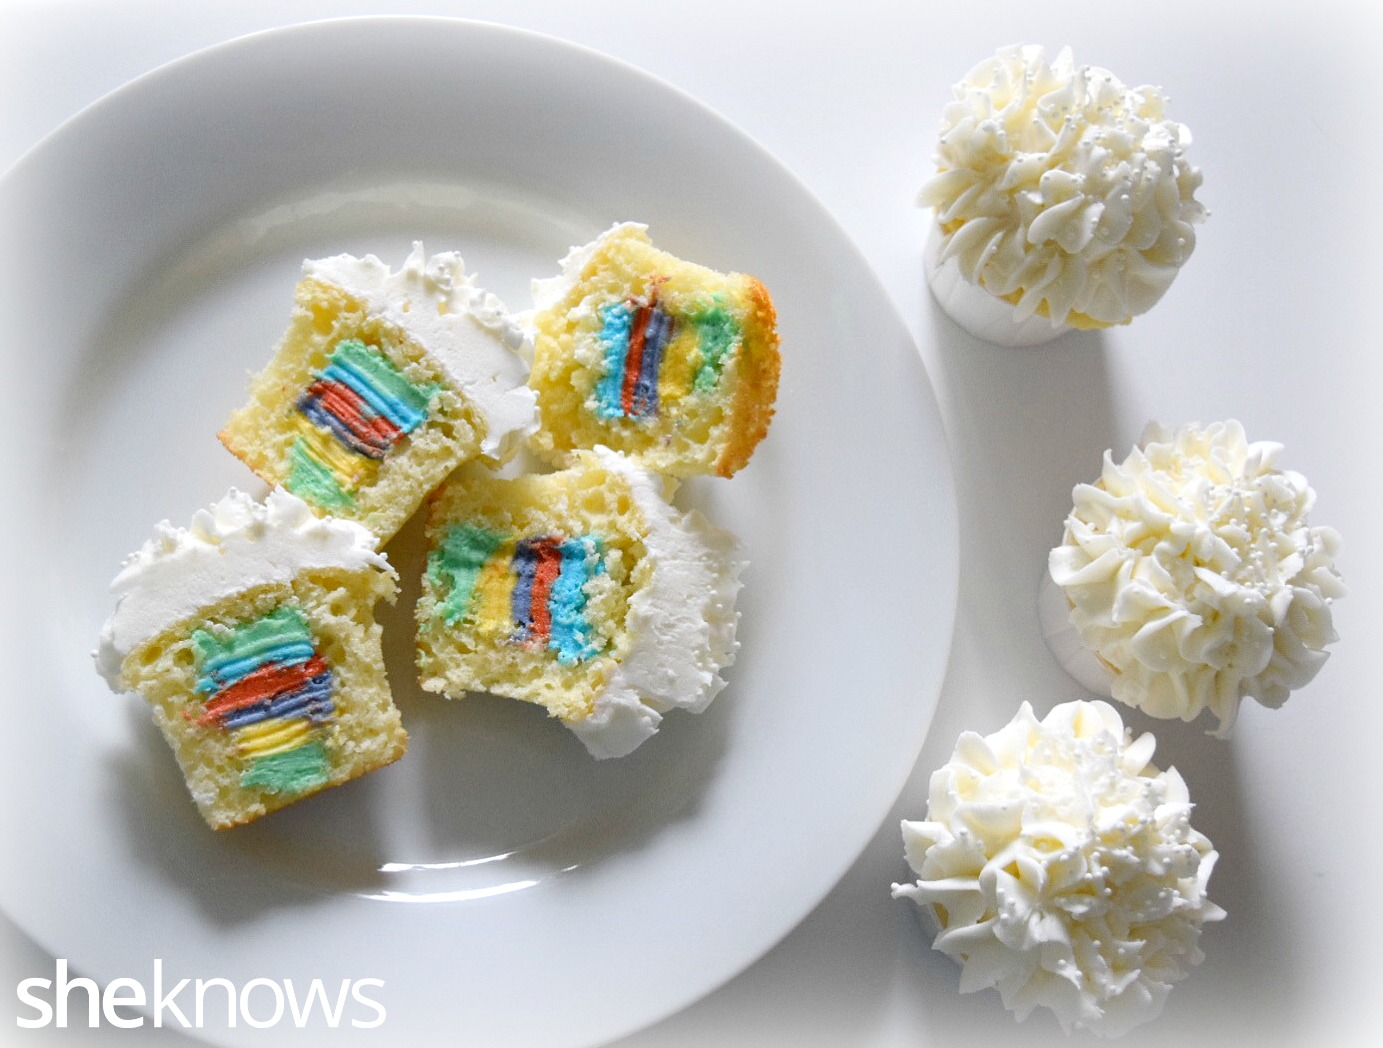 Rainbow Cupcake with Filling